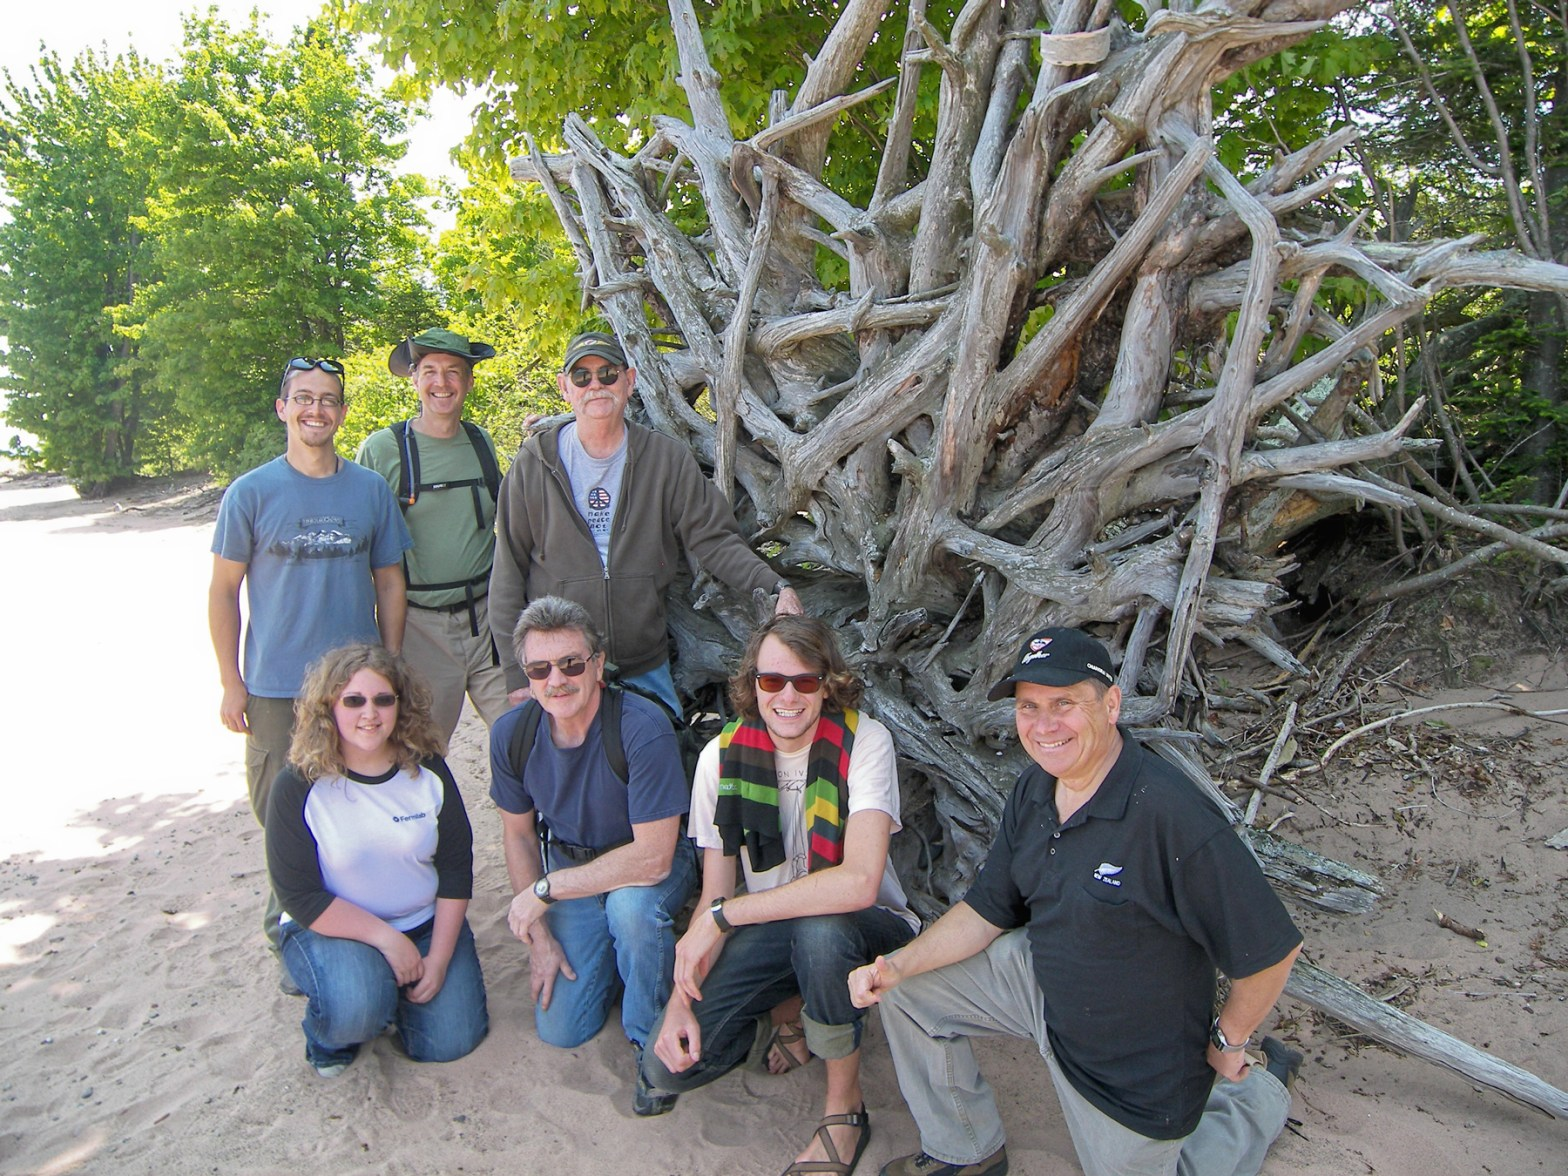 Stu Whipple (front row, second from the left) with the seasonal ranger crew at the Raspberry Island sandspit